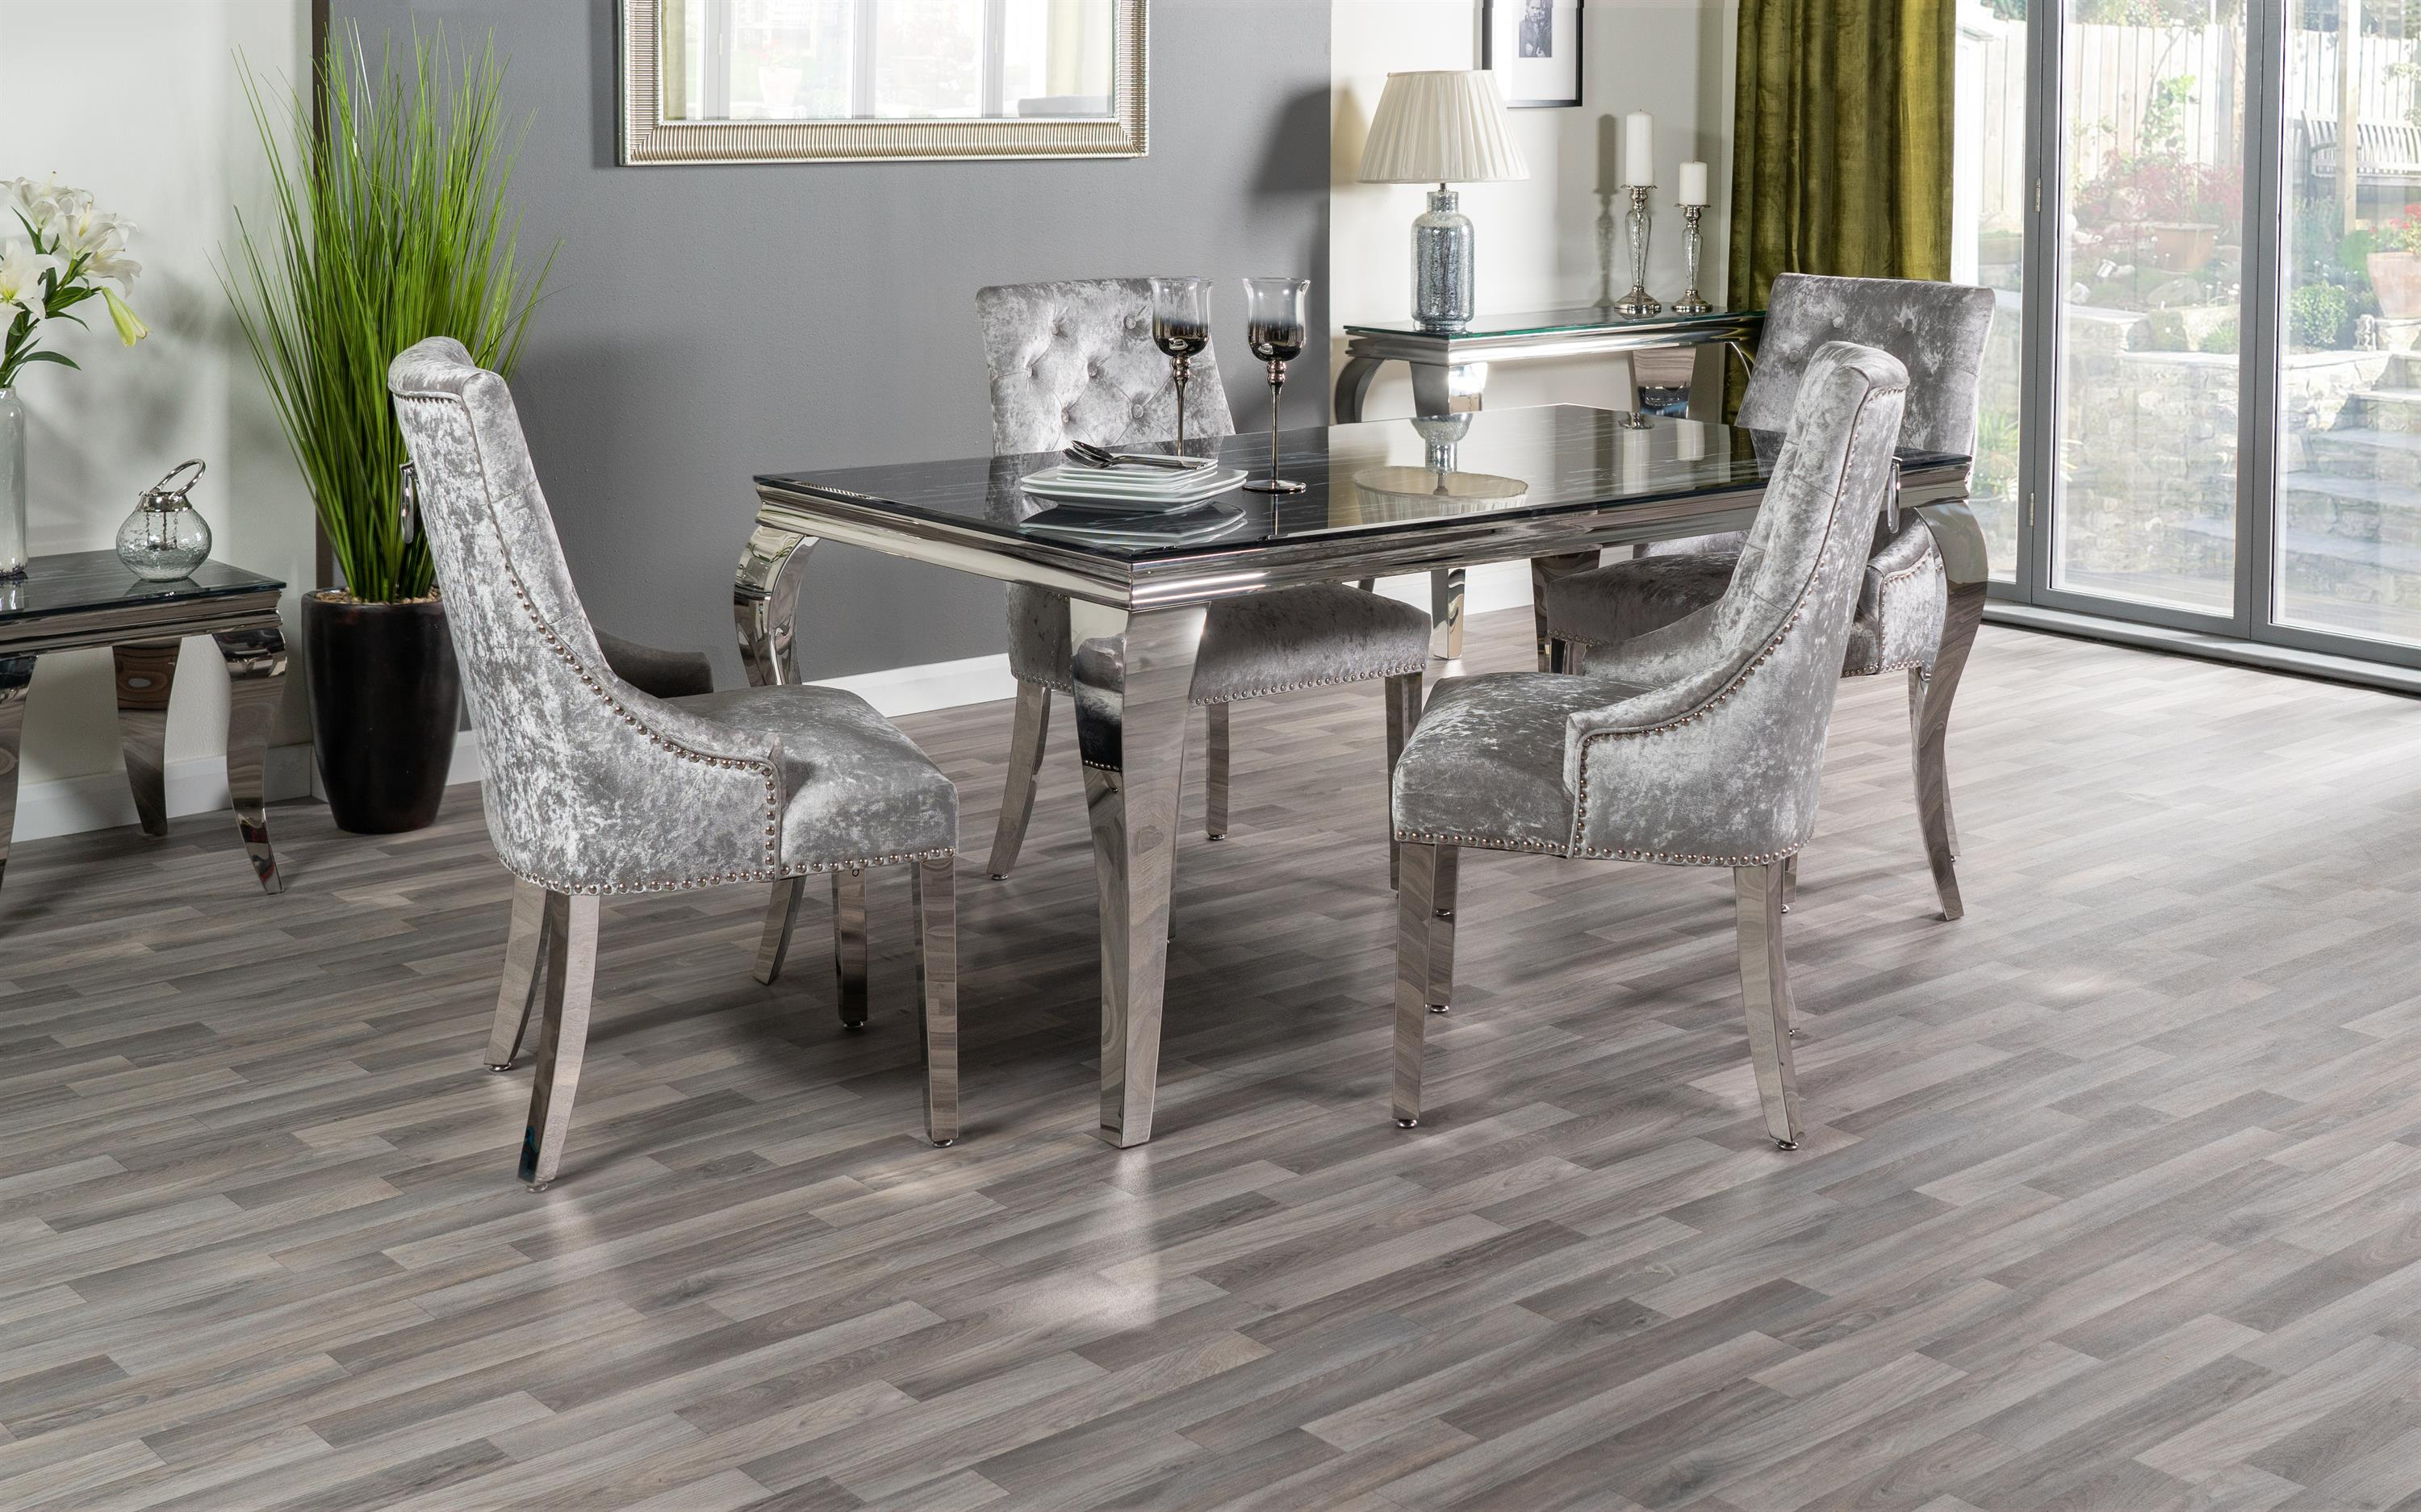 Paris Marble Effect Dining Table & 4 Silver Chairs